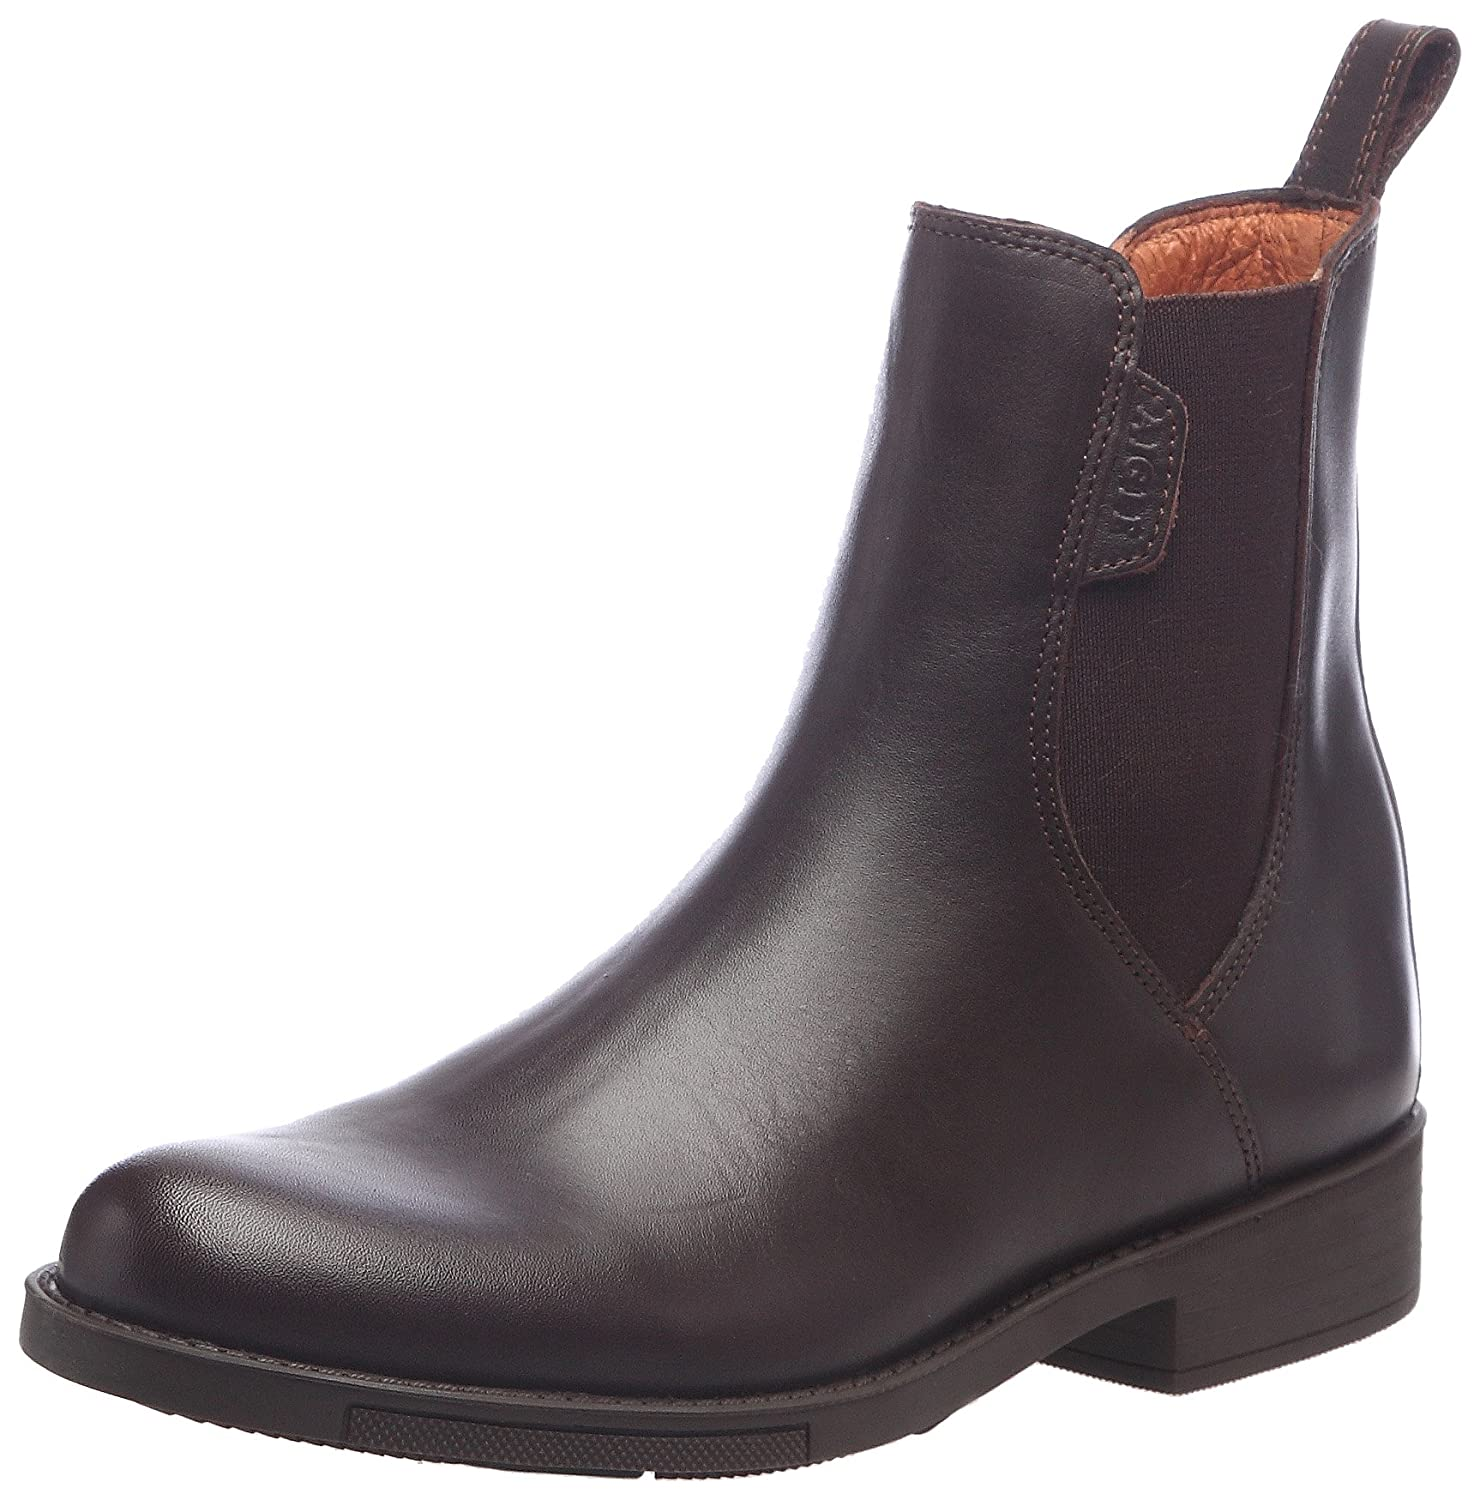 Hommes Chaussures Quercy Chaussures Équestres Aigle bKW8hpW